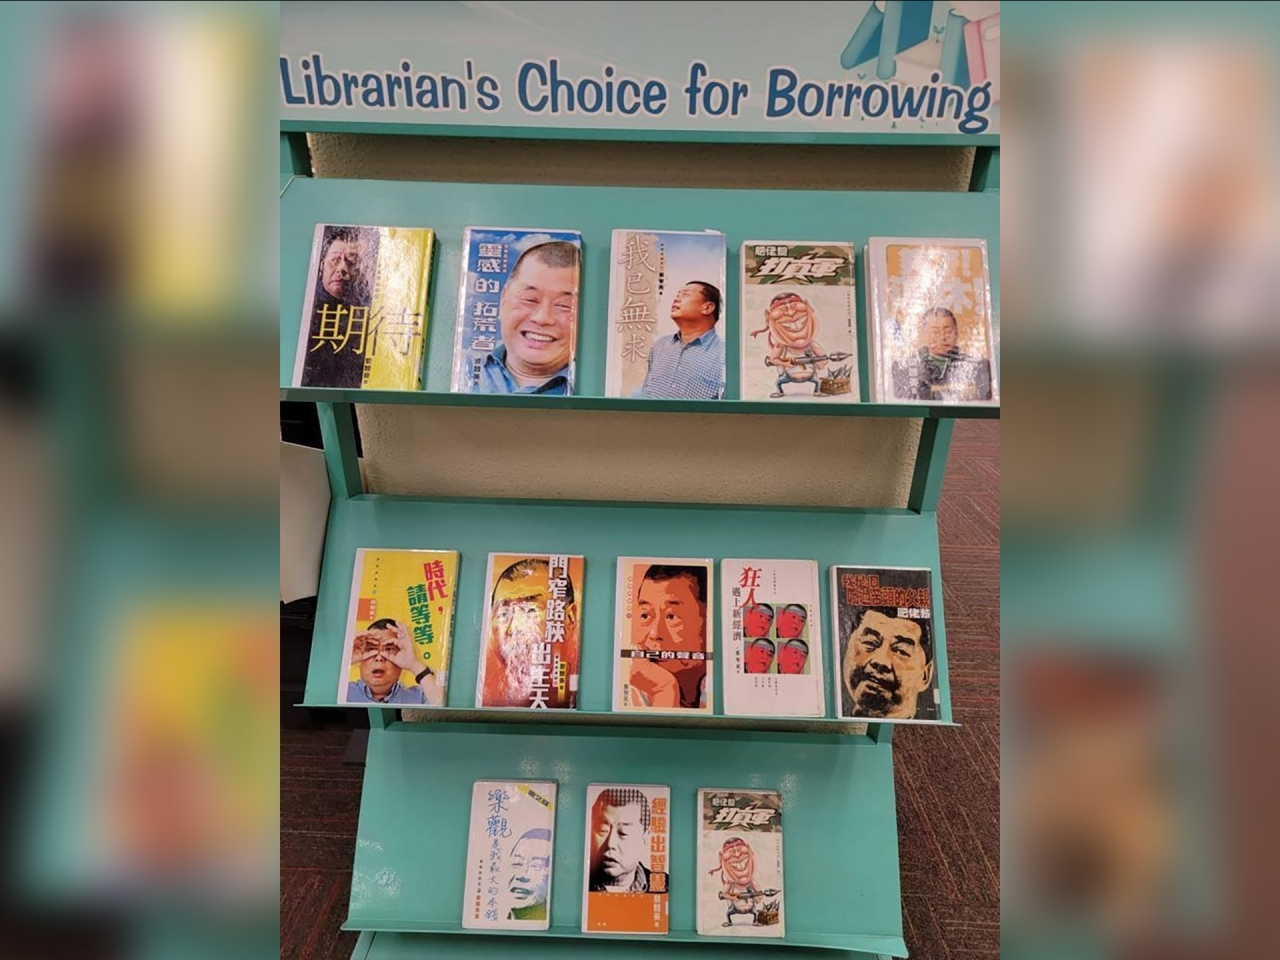 13 books written by Jimmy Lai were displayed on a 'librarian's choice for borrowing' shelf. Photo courtesy: Horace Cheung's Facebook page.